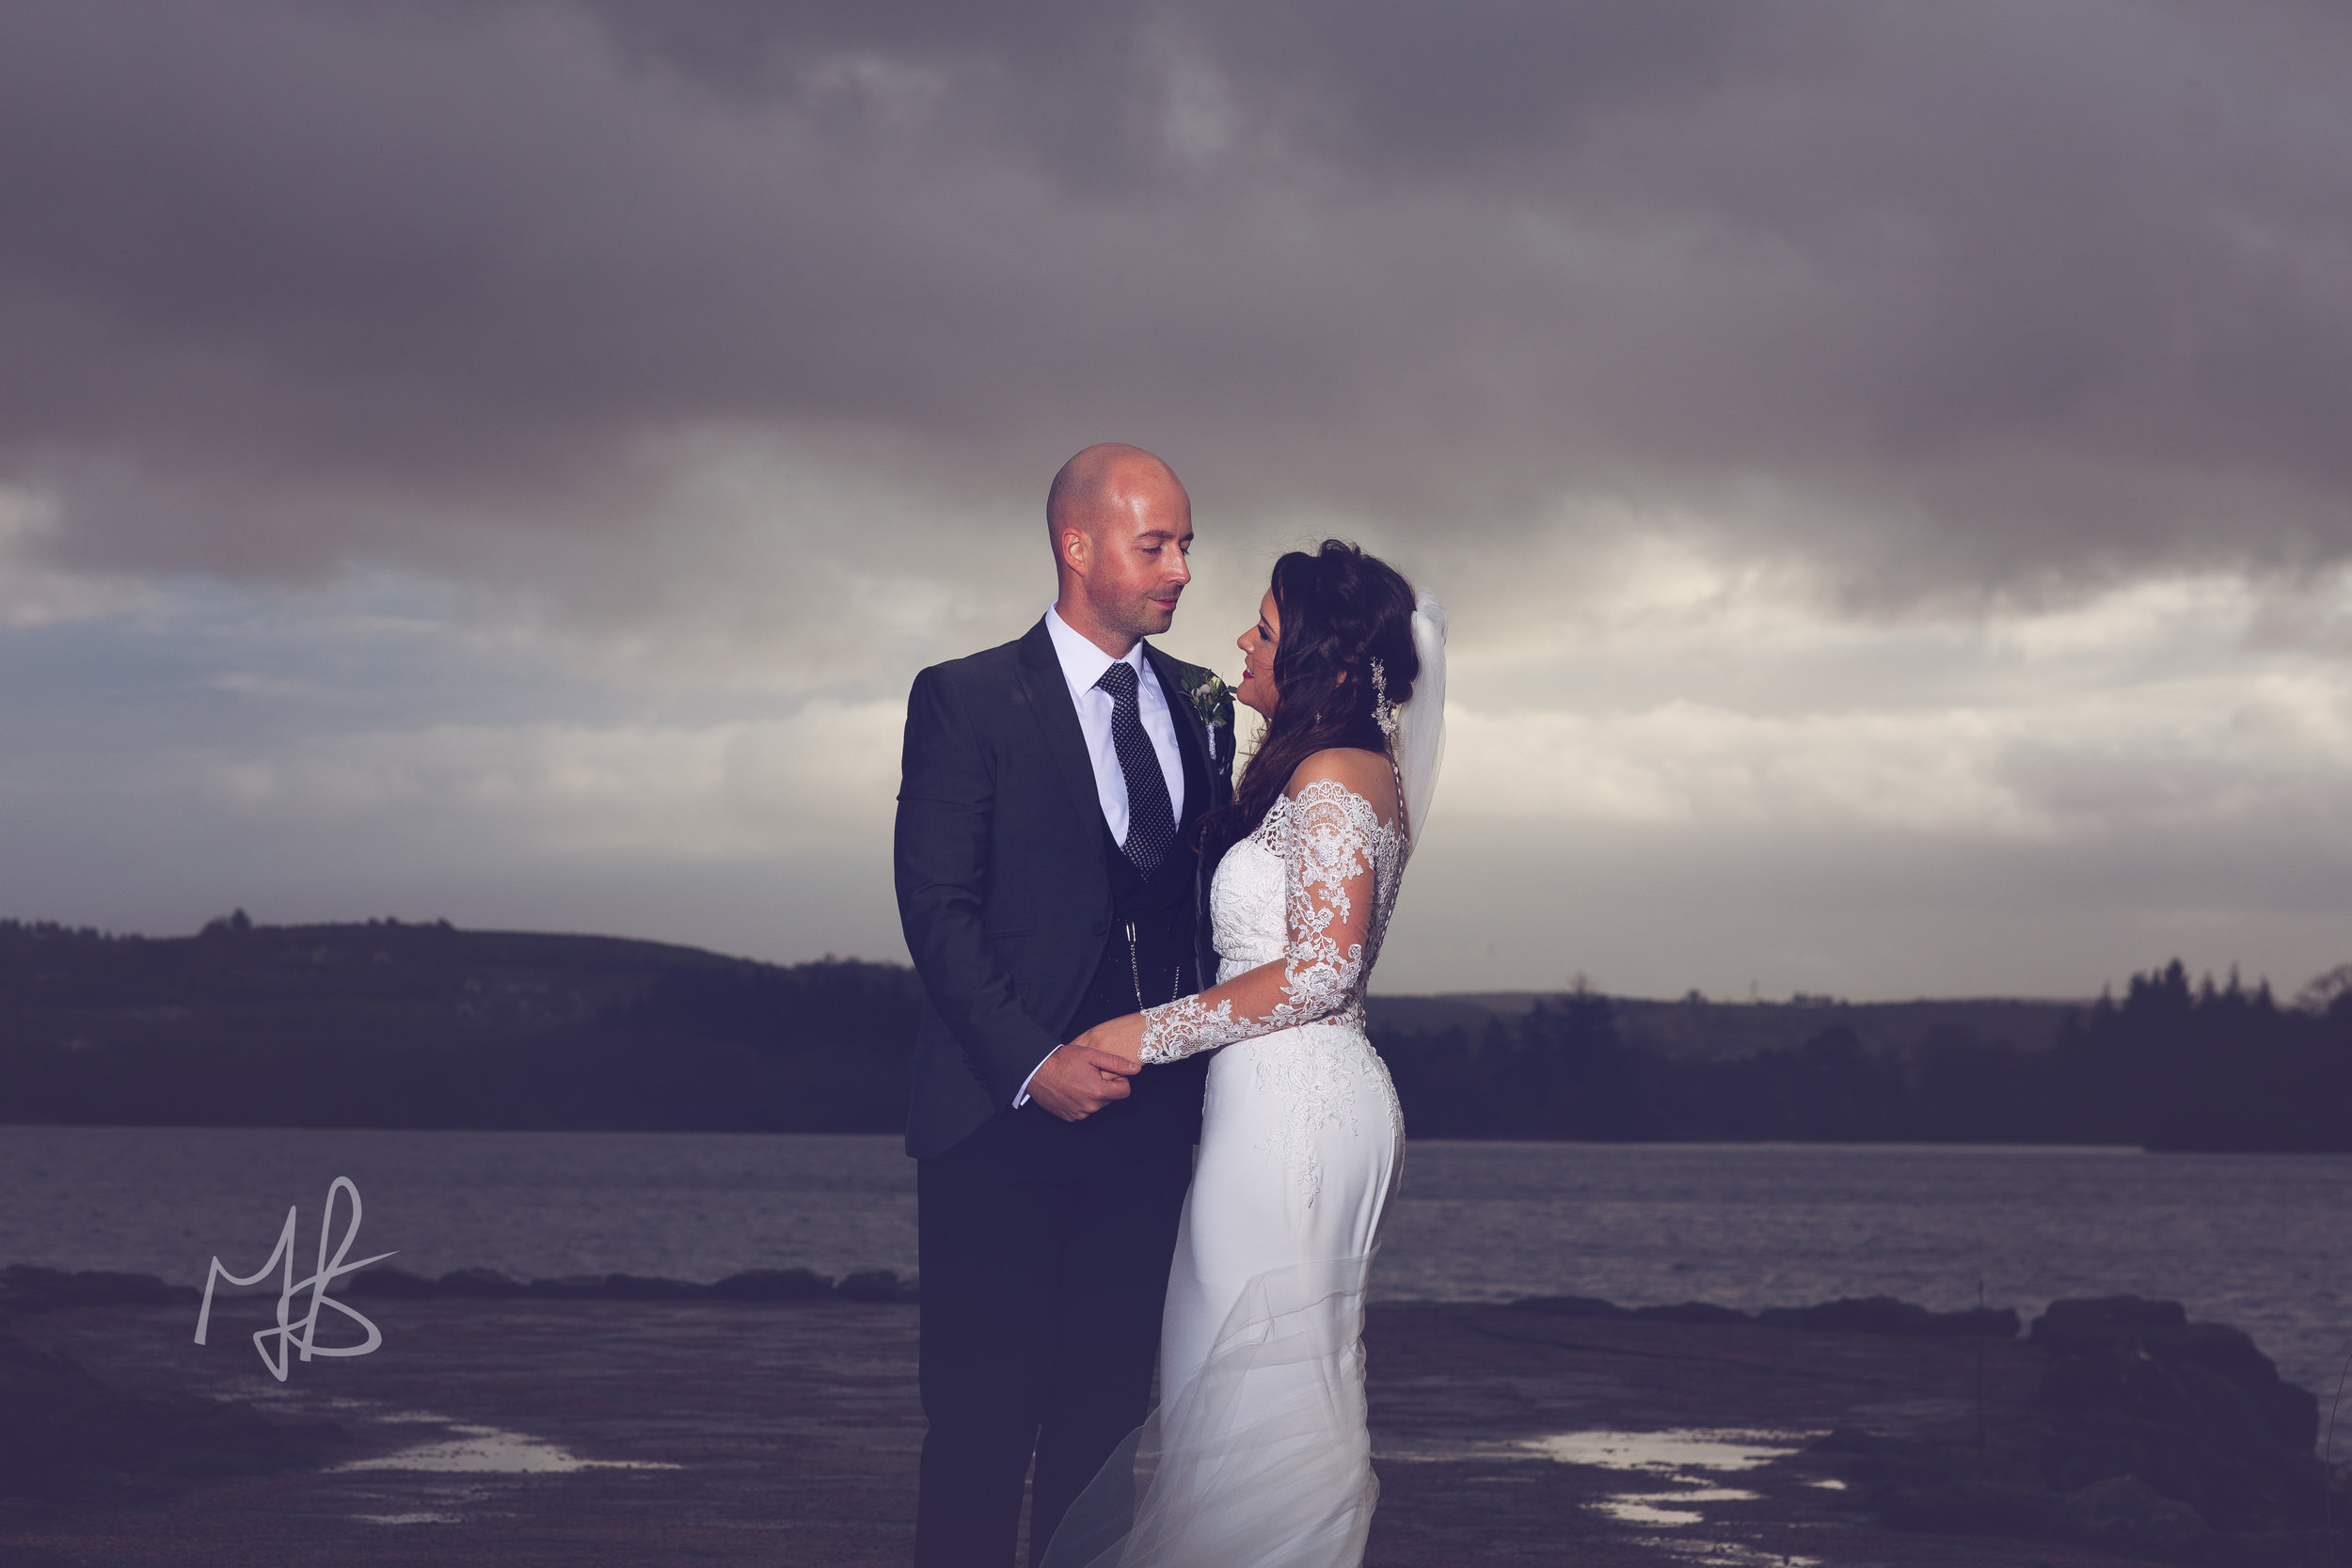 Mark_Barnes_Northern_Ireland_Wedding_Photography_Harveys-point-donegall_Wedding_Photography-1.jpg